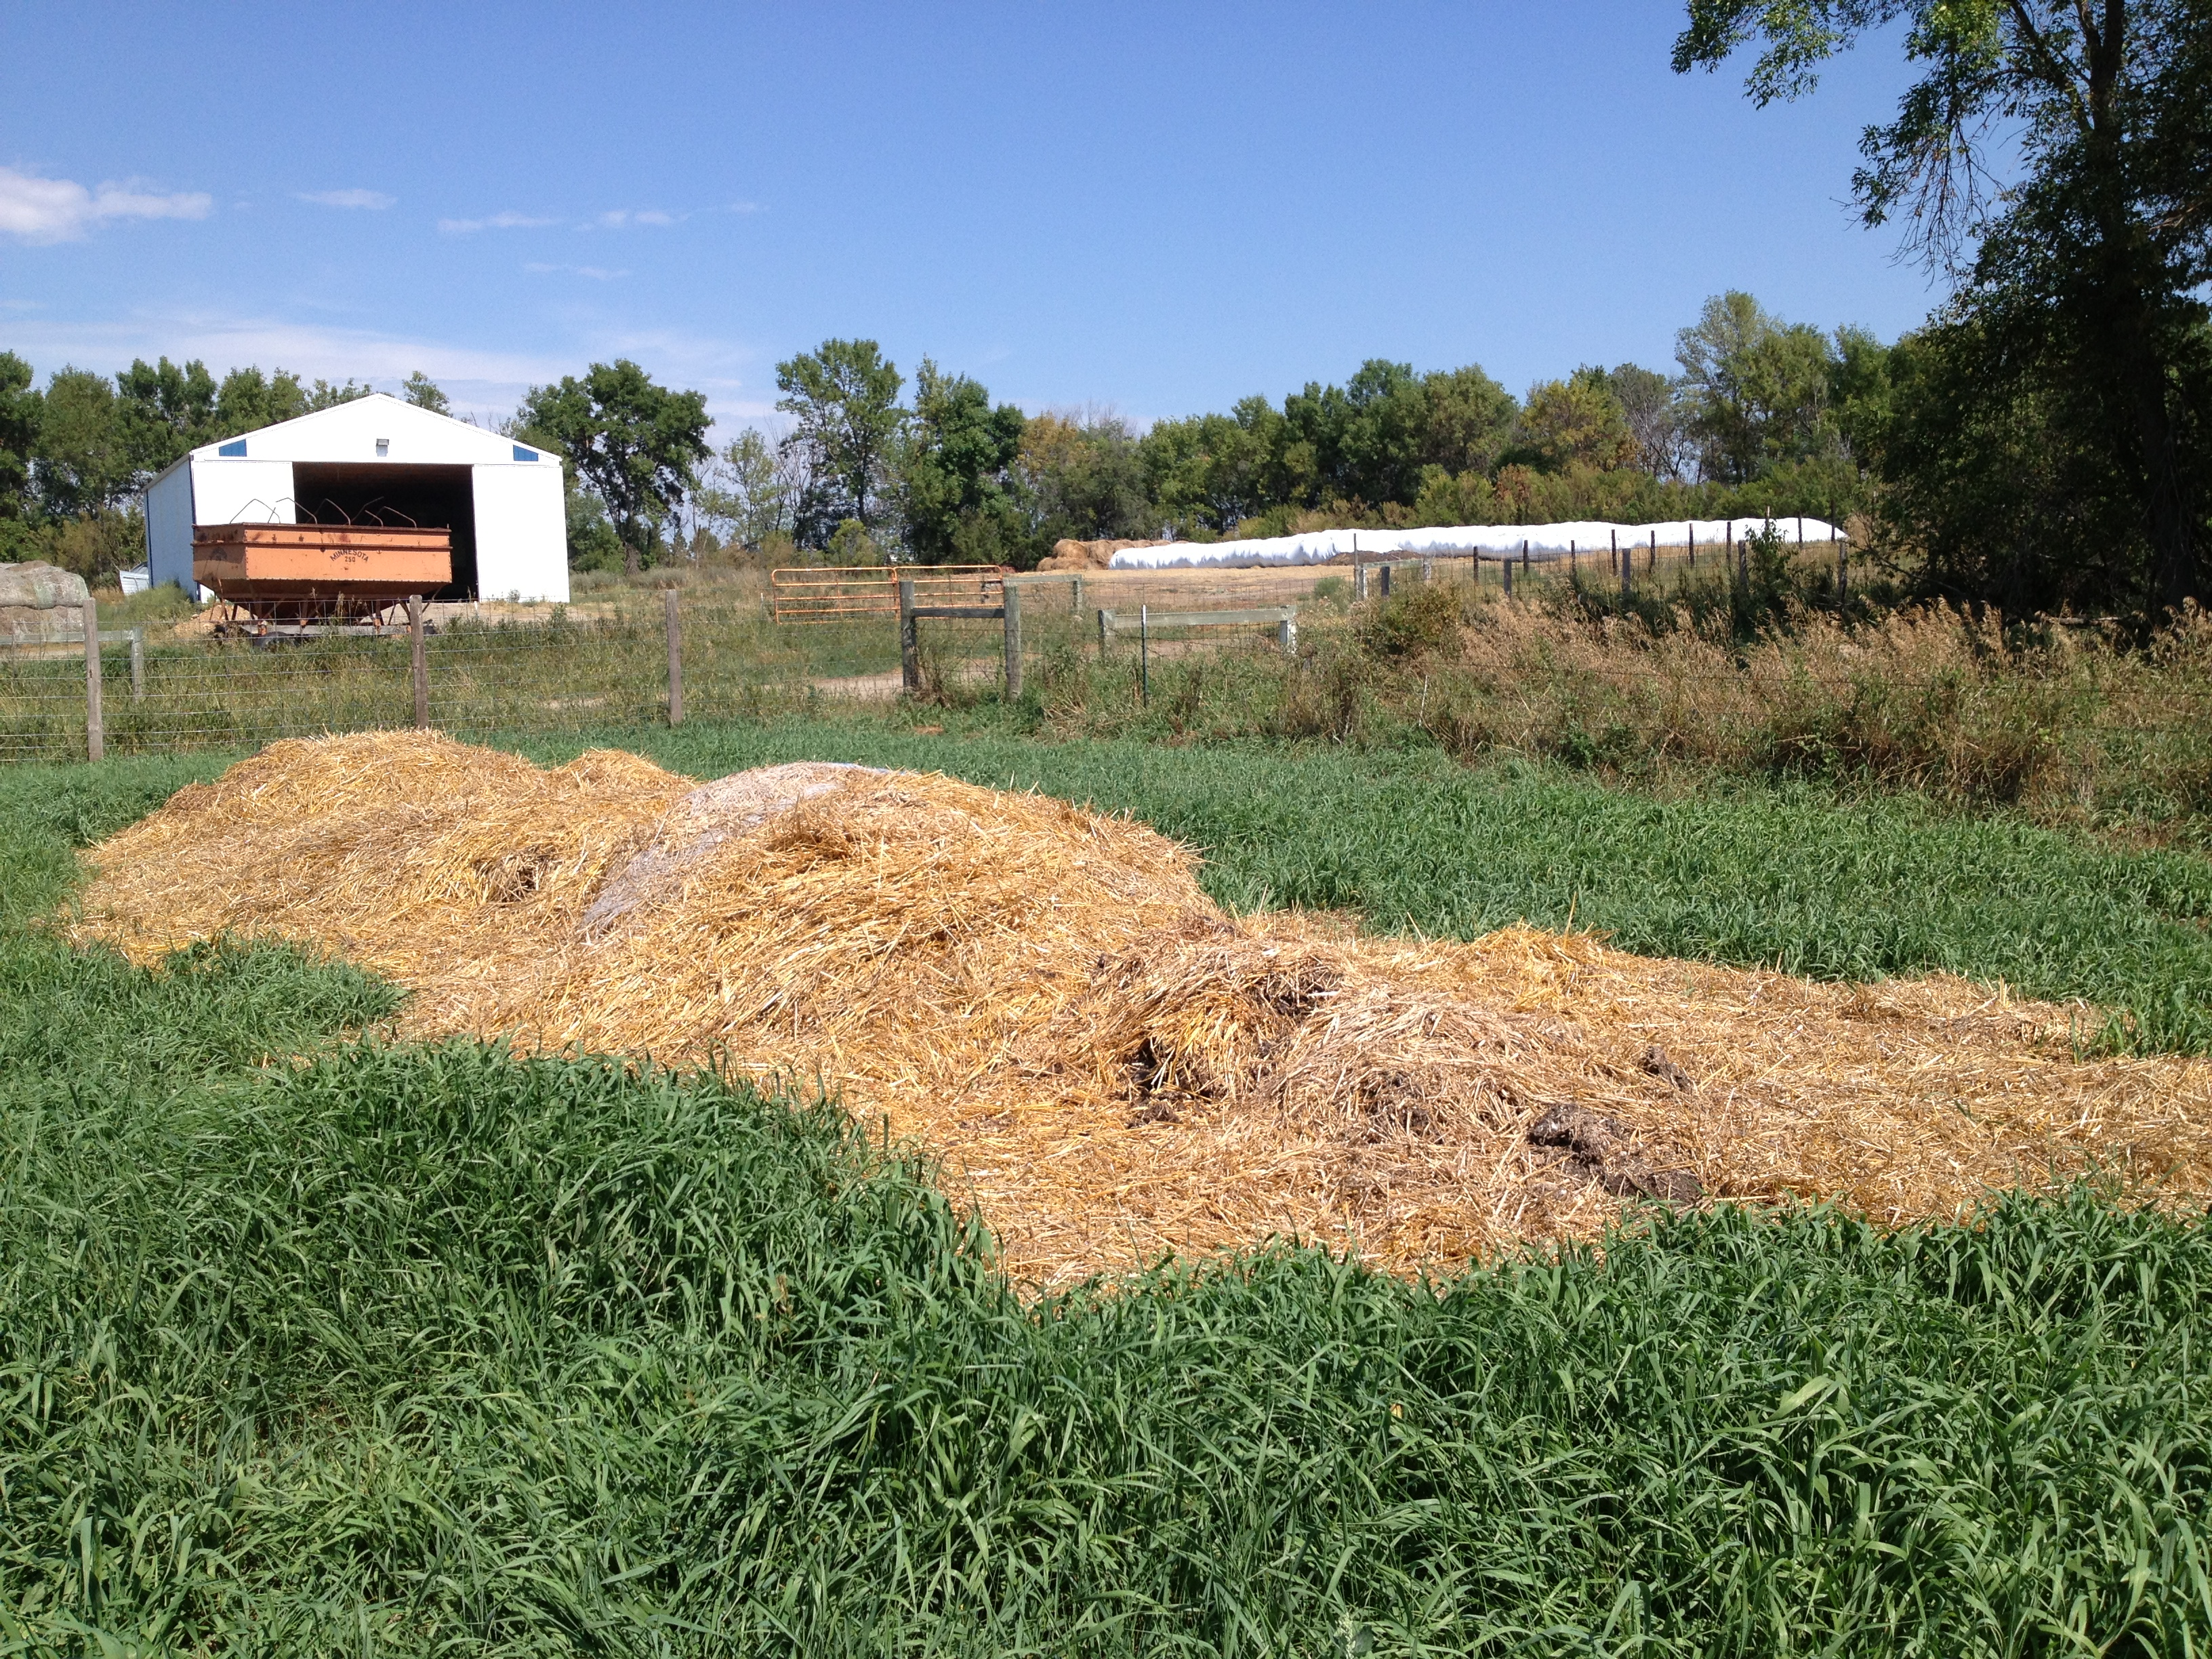 NDSU's Central Grasslands Research Extension Center is using a mortality compost windrow. (NDSU photo)